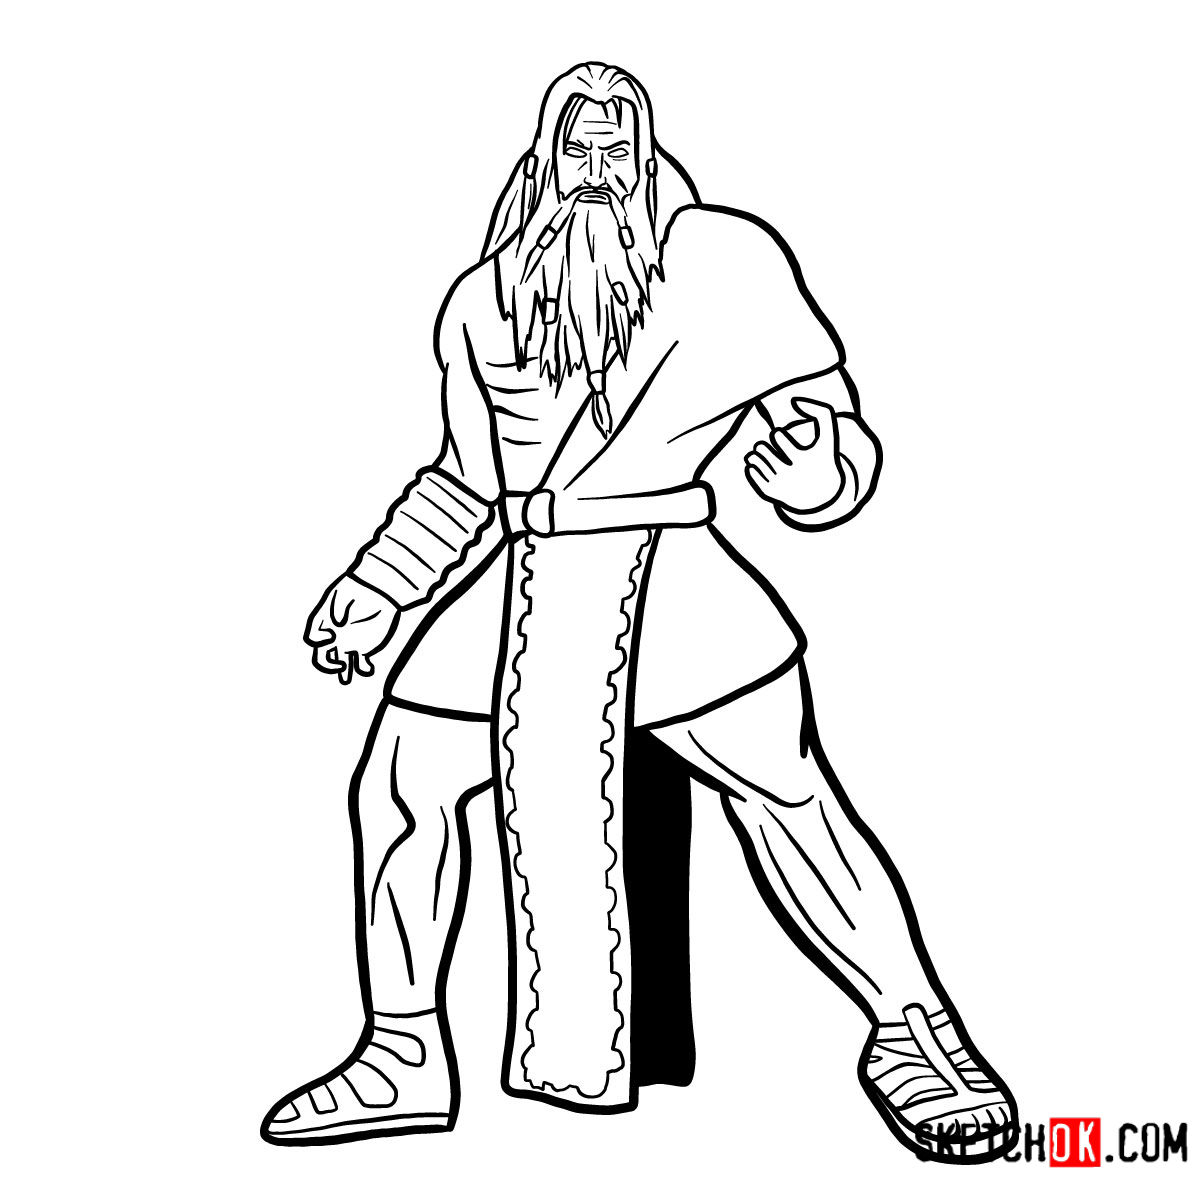 how to draw zeus step by step how to draw god step by step arcmelcom draw zeus by step step how to